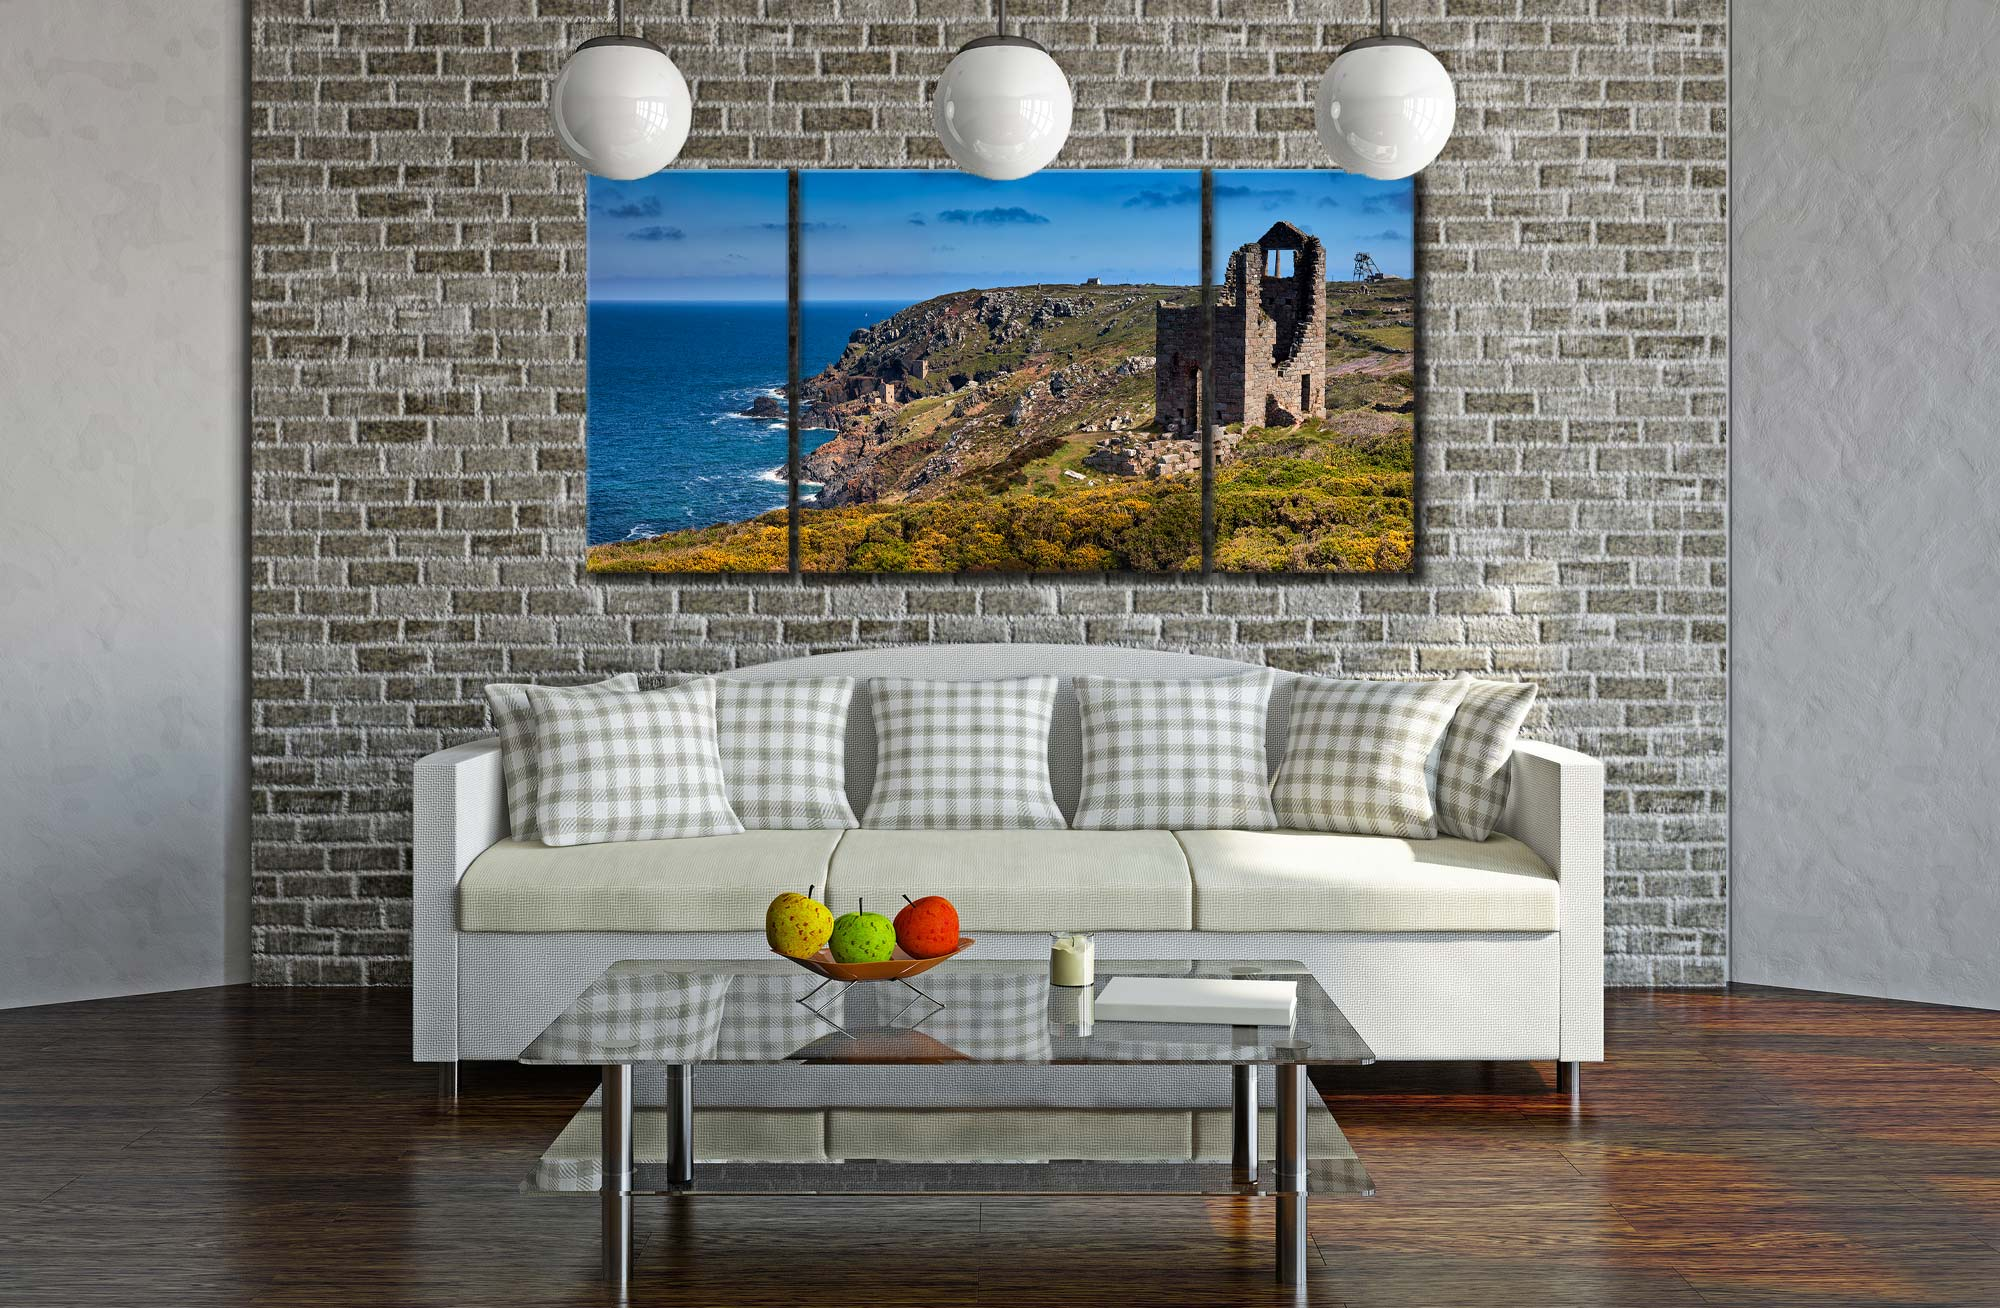 Mining Coast of Botallack - 3 Panel Wide Centre Canvas on Wall